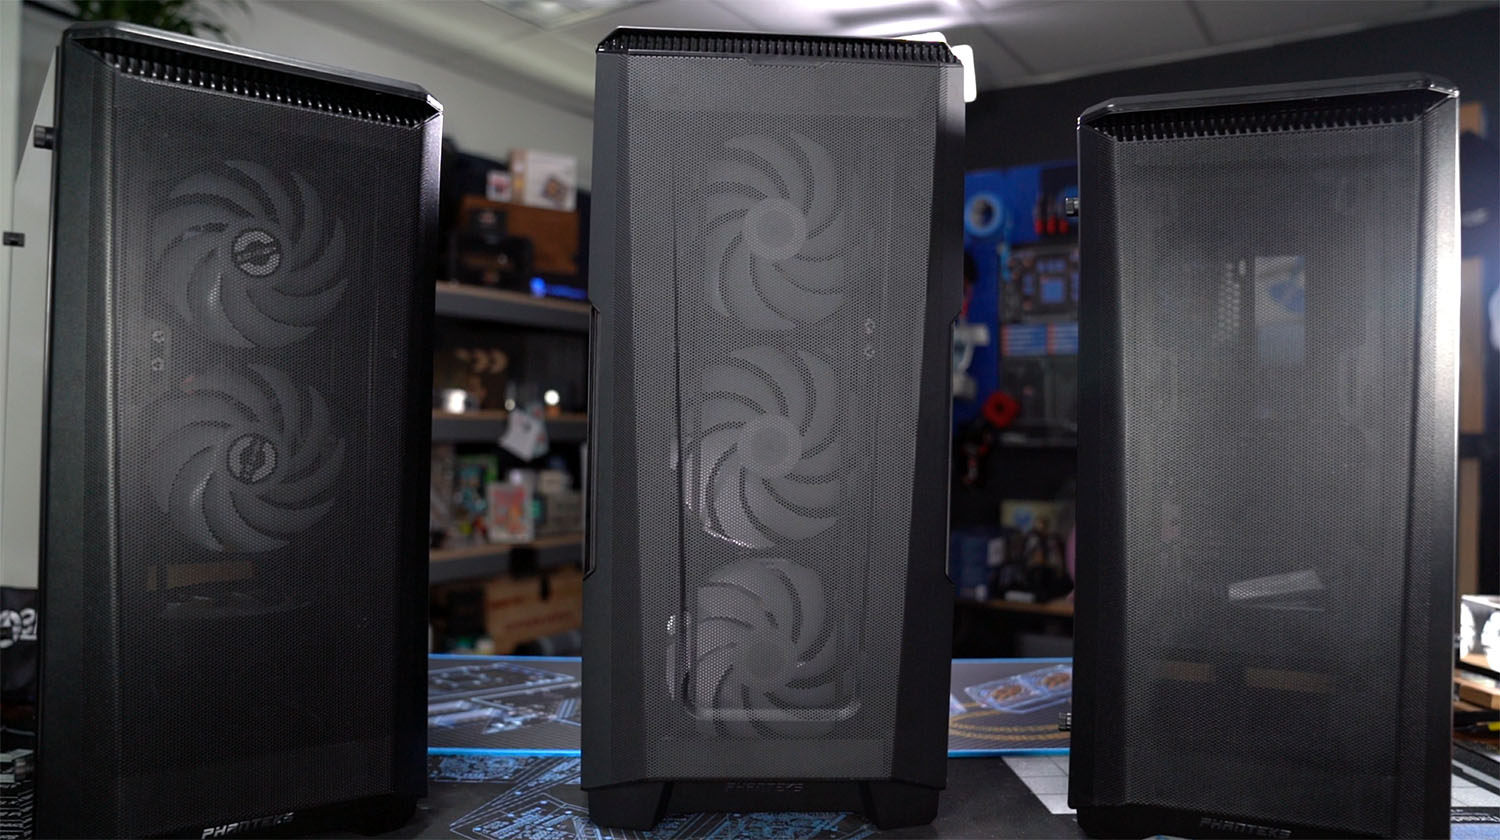 phanteks p500a article 2